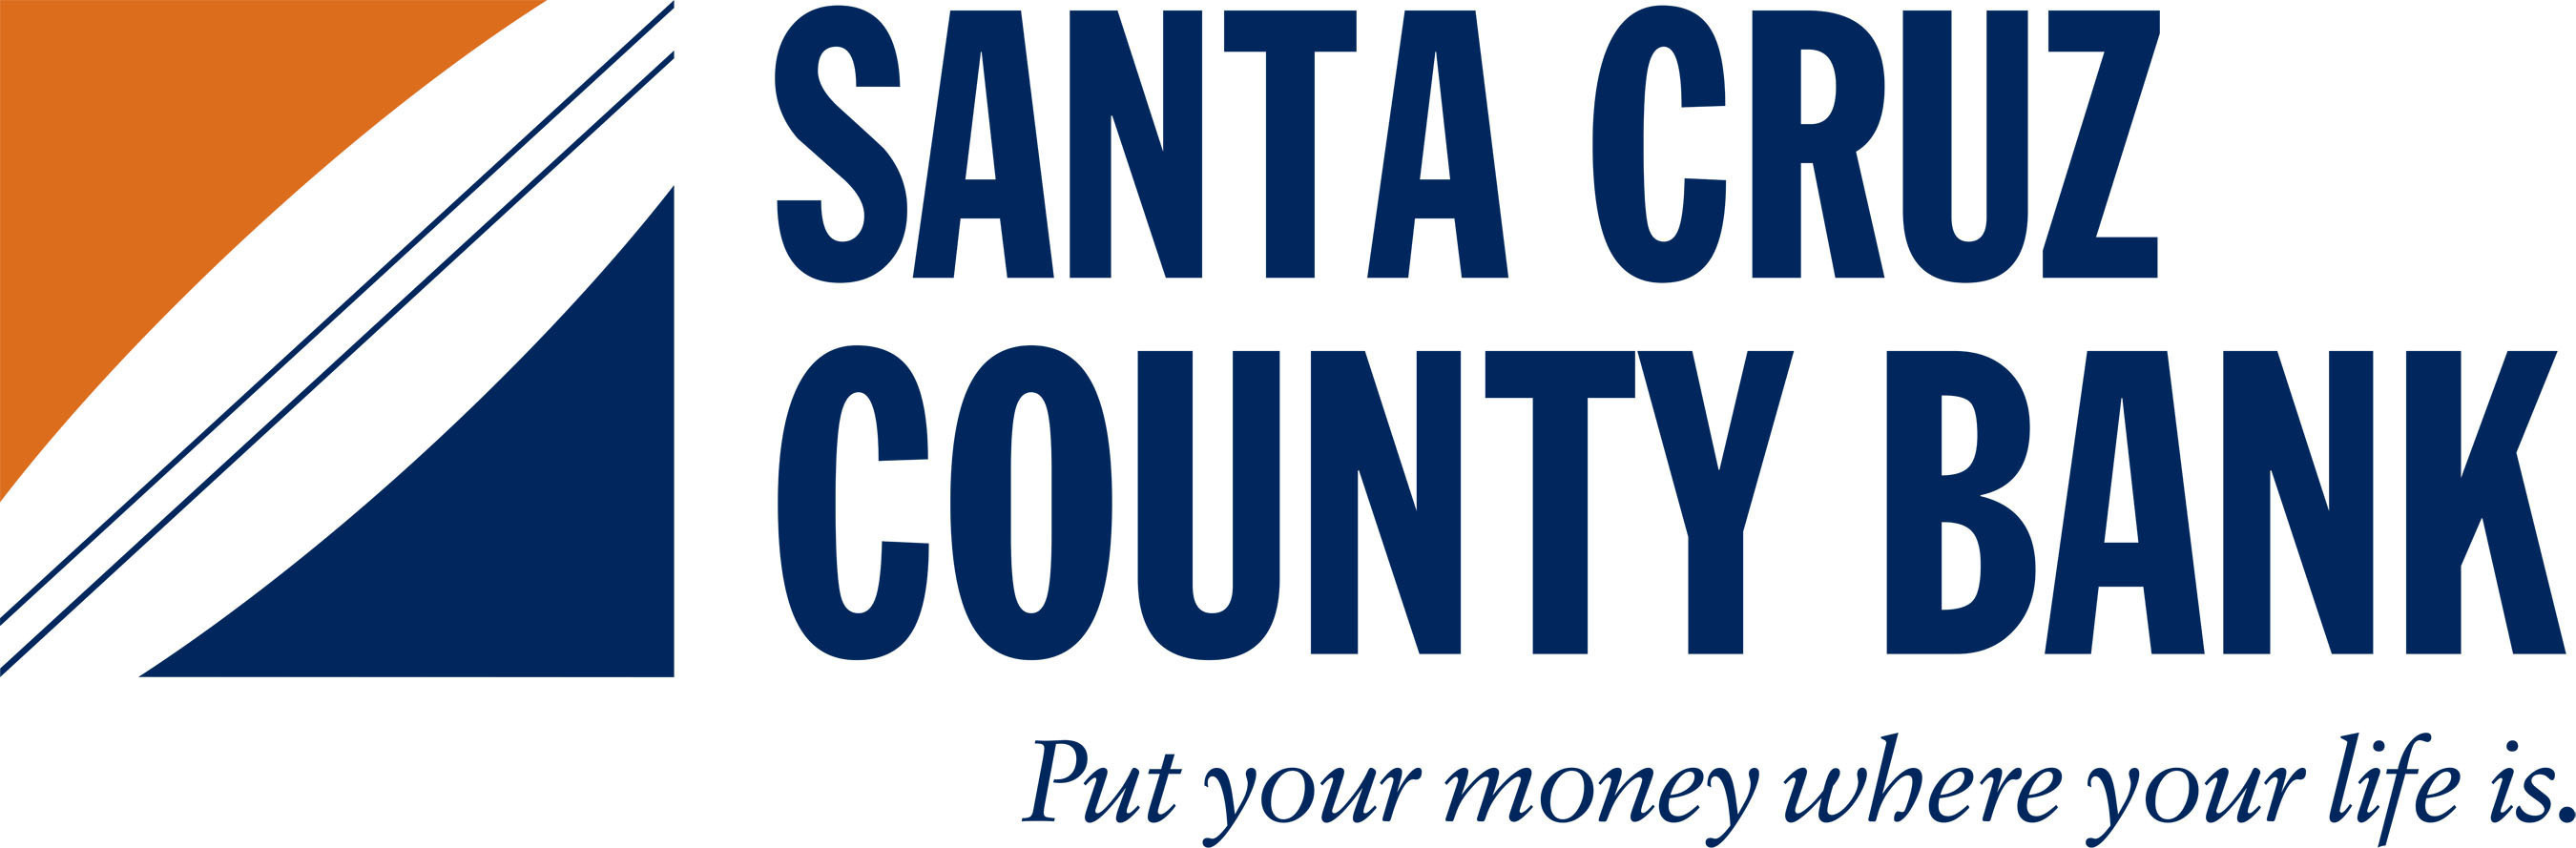 Santa Cruz County Bank logo